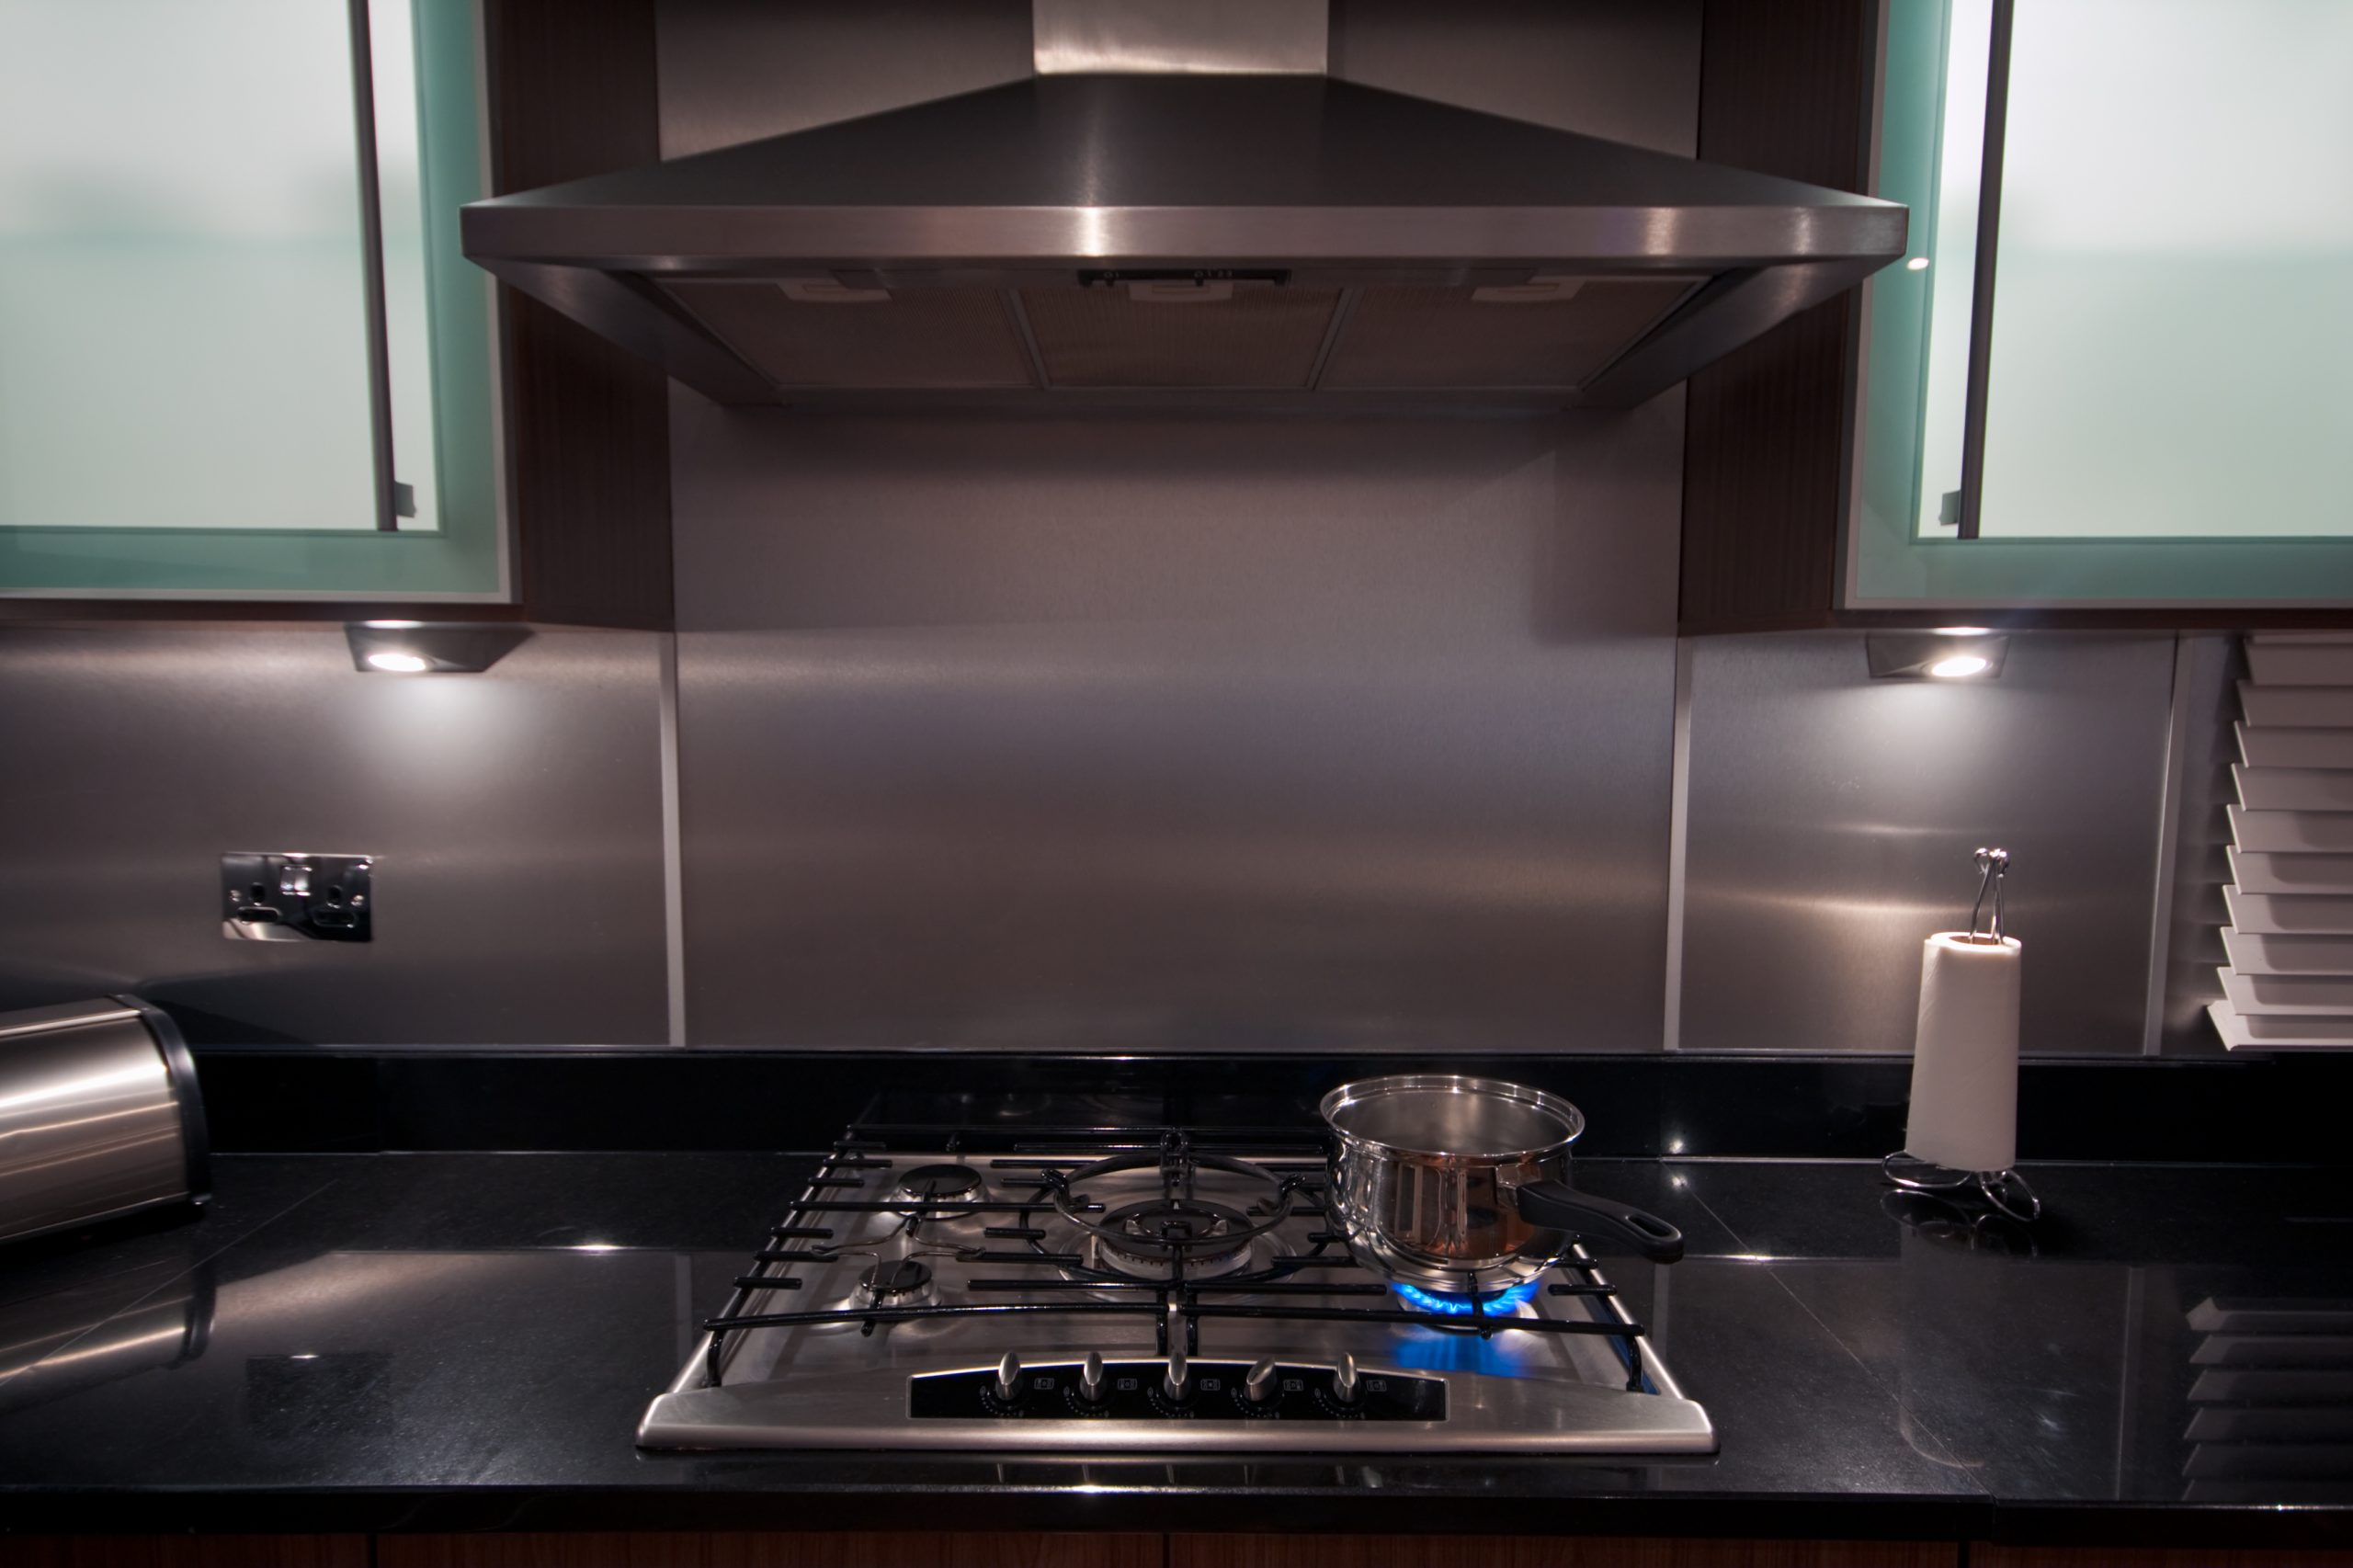 Stainless steel pan on gas hob in a modern kitchen